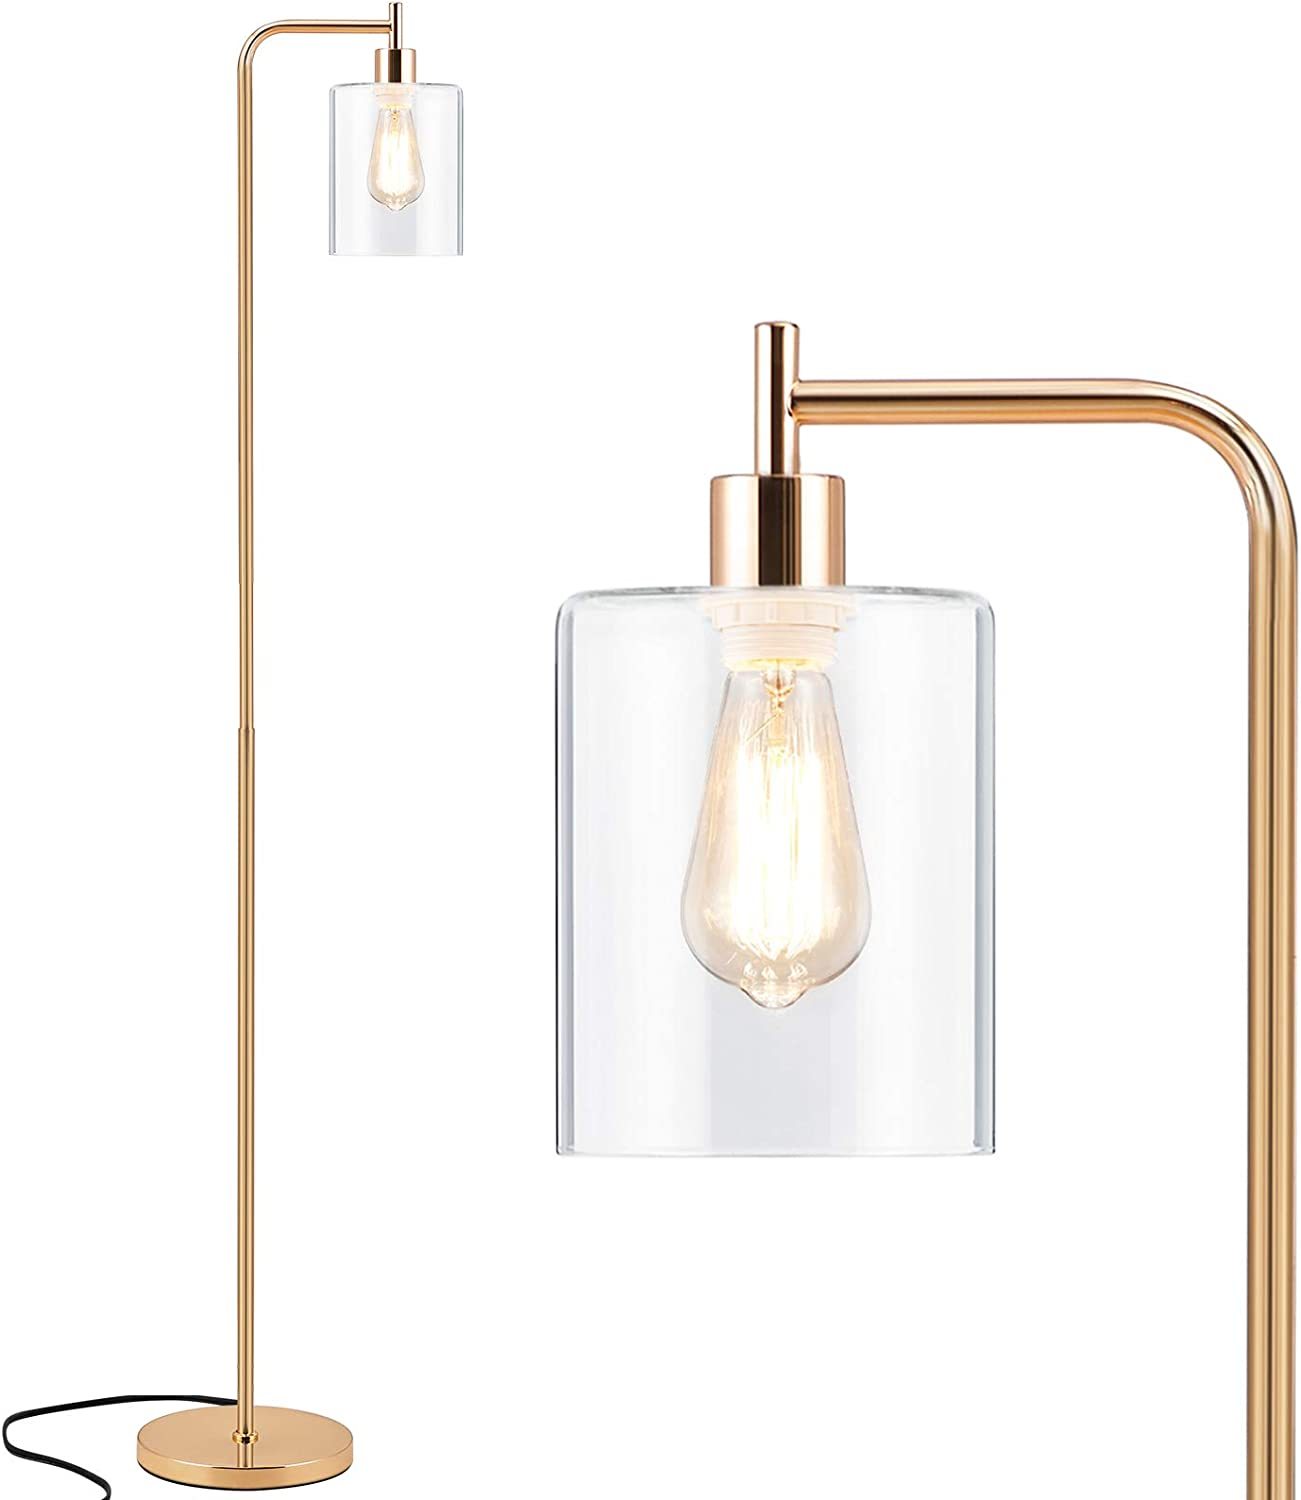 Tall LED Floor Lamp, Acaxin Modern Standing Lamp with Hanging Glass Shade and Bulb, Gold Farmhouse Indoor Pole Simple Floor Lamp, Industrial Reading Light for Living Room, Bedroom, Office, Home Decor